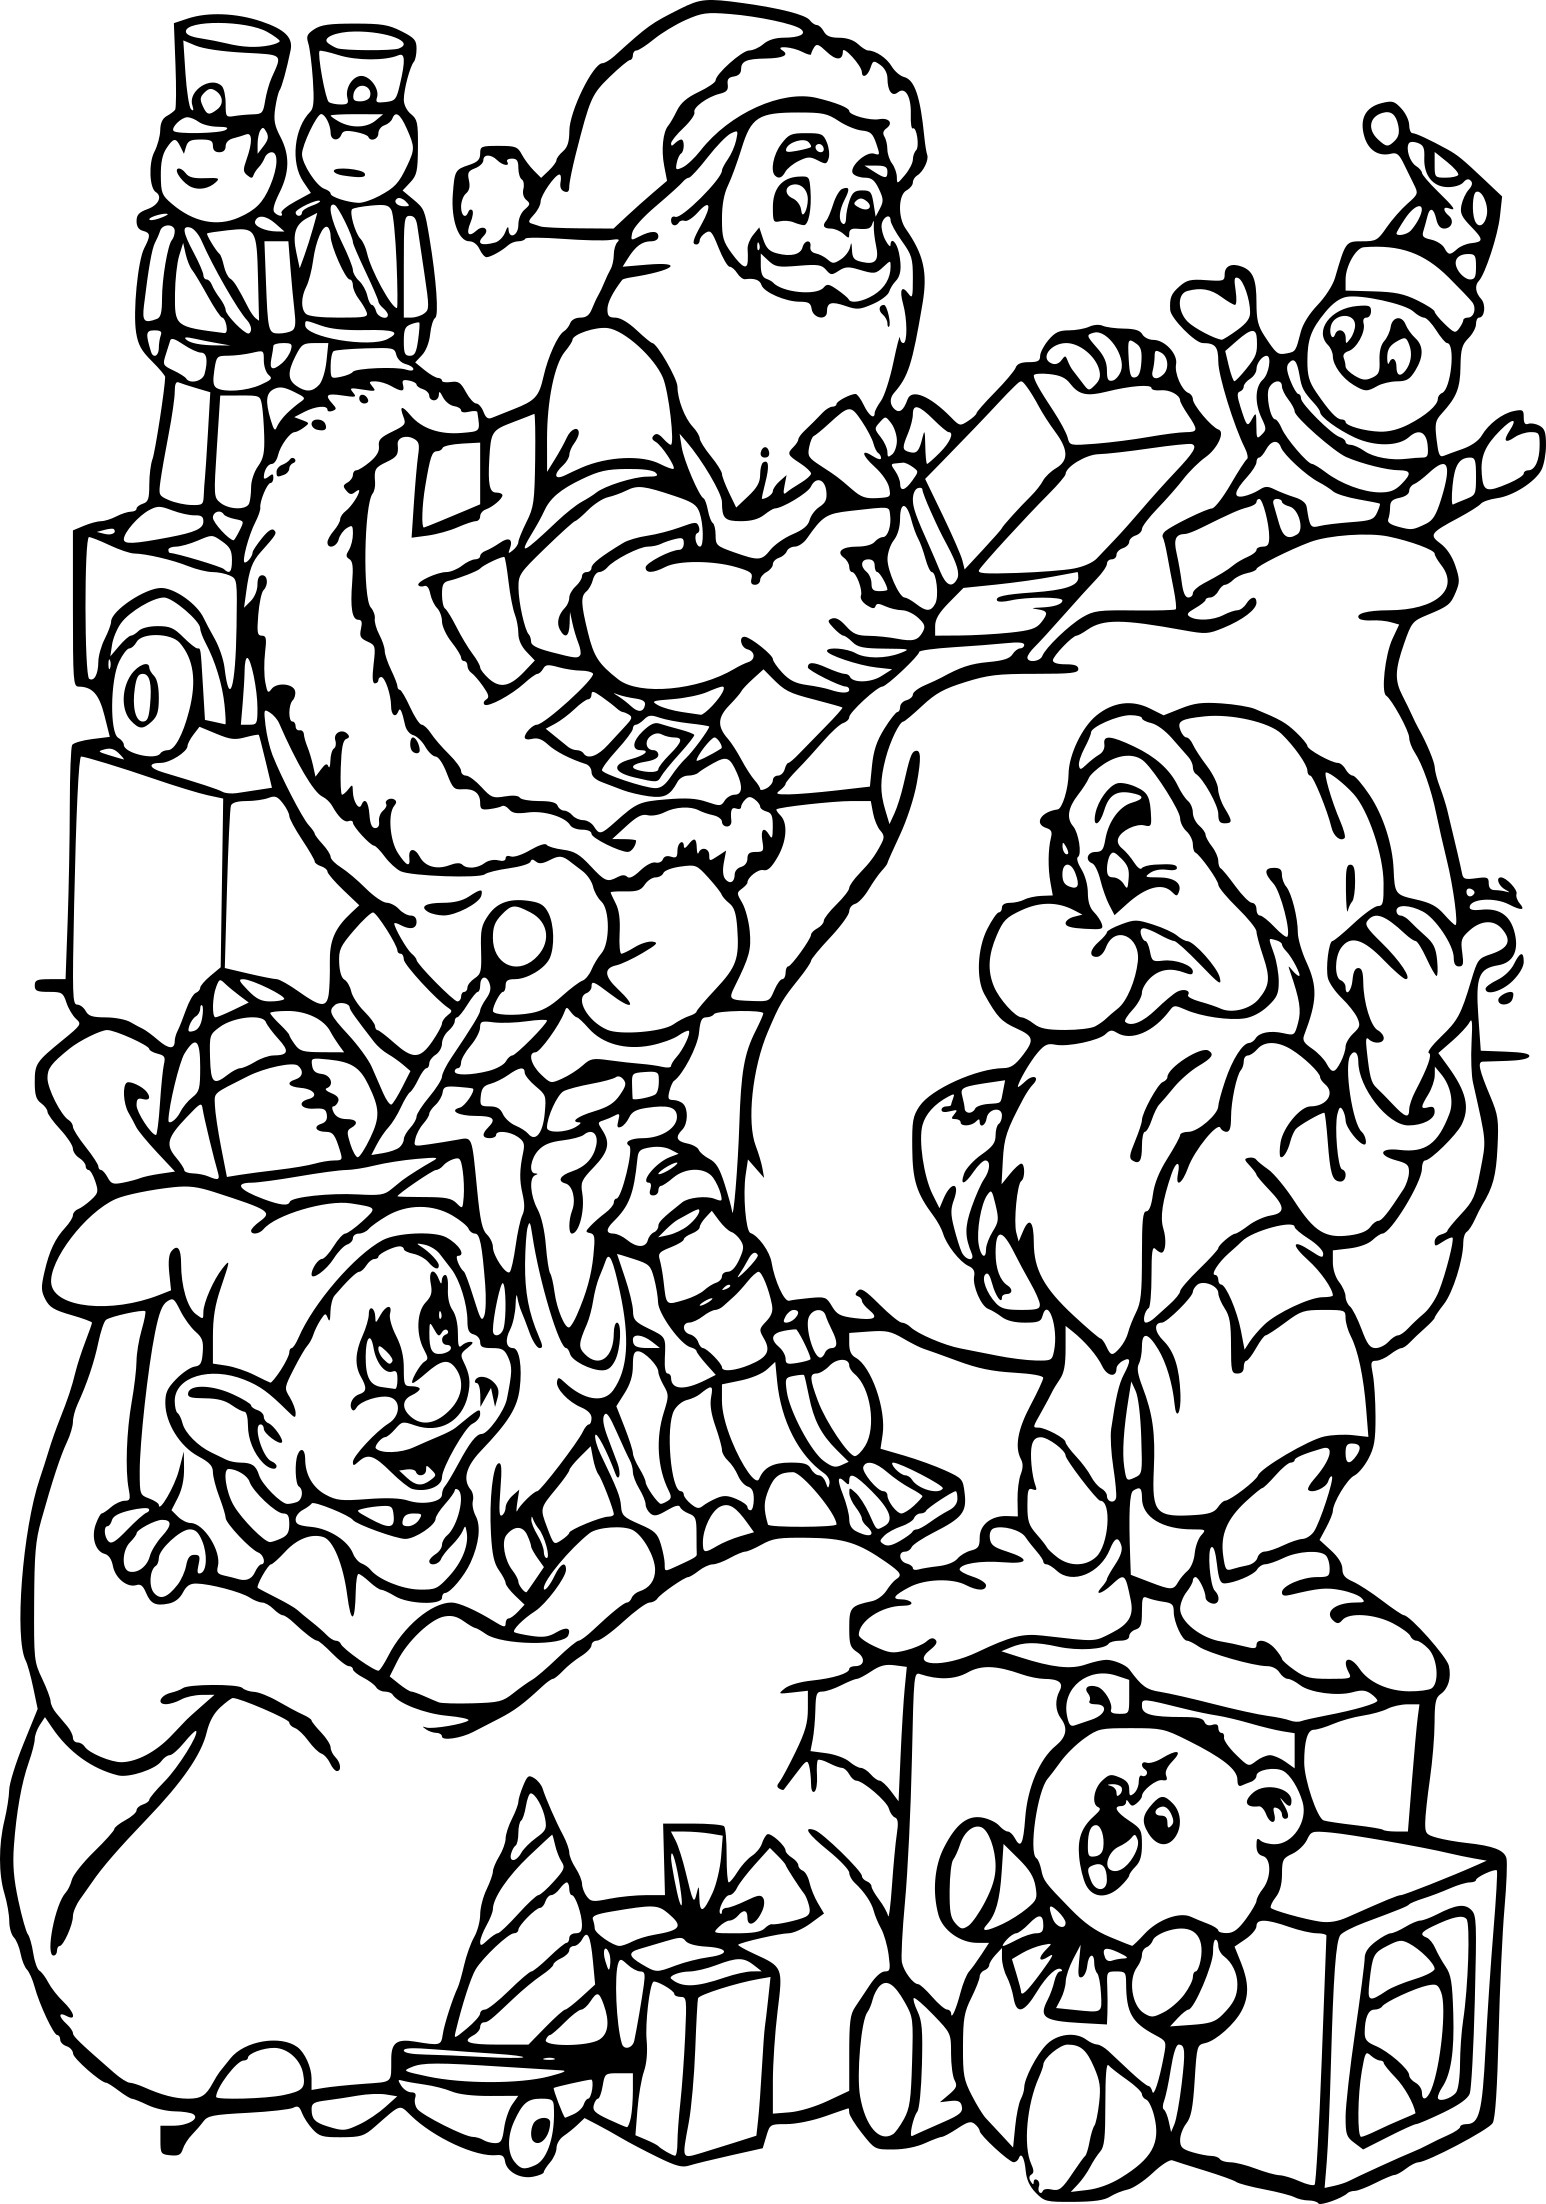 Coloriage Noel Disney À Imprimer destiné Coloriage Disney